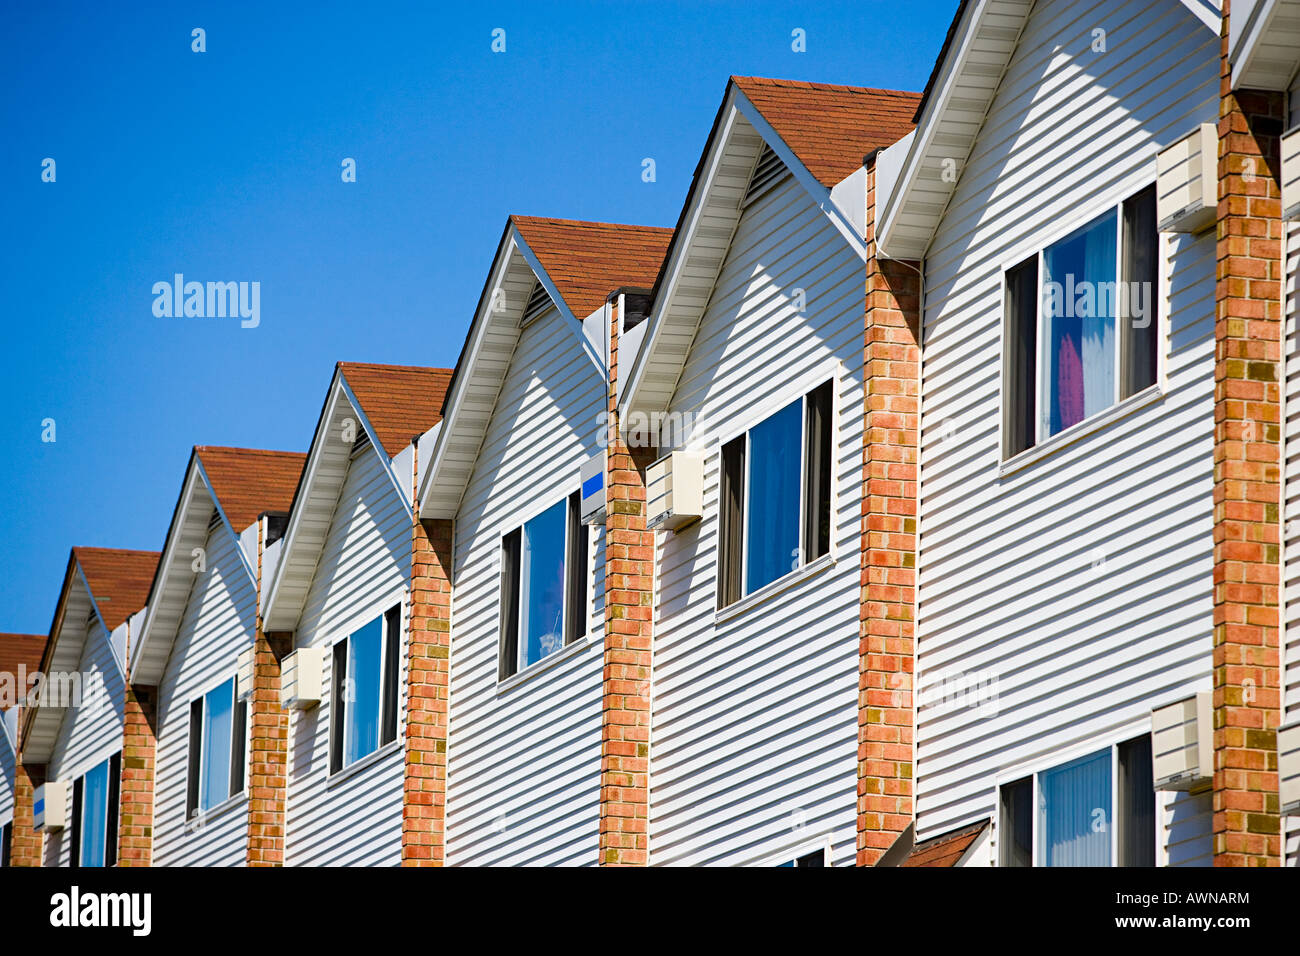 Tract houses in new jersey - Stock Image